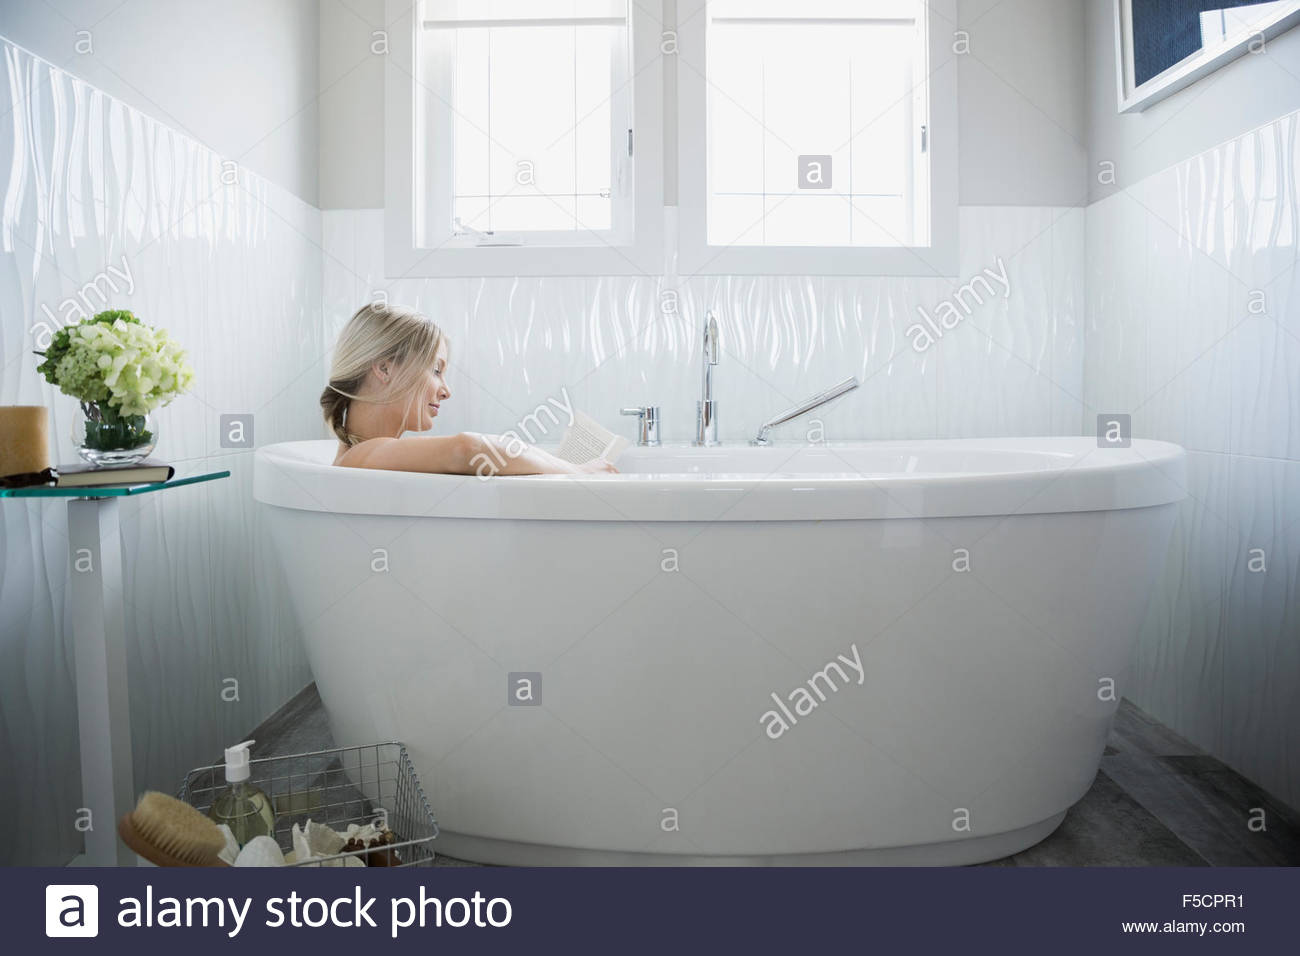 bathing stockfotos bathing bilder alamy. Black Bedroom Furniture Sets. Home Design Ideas